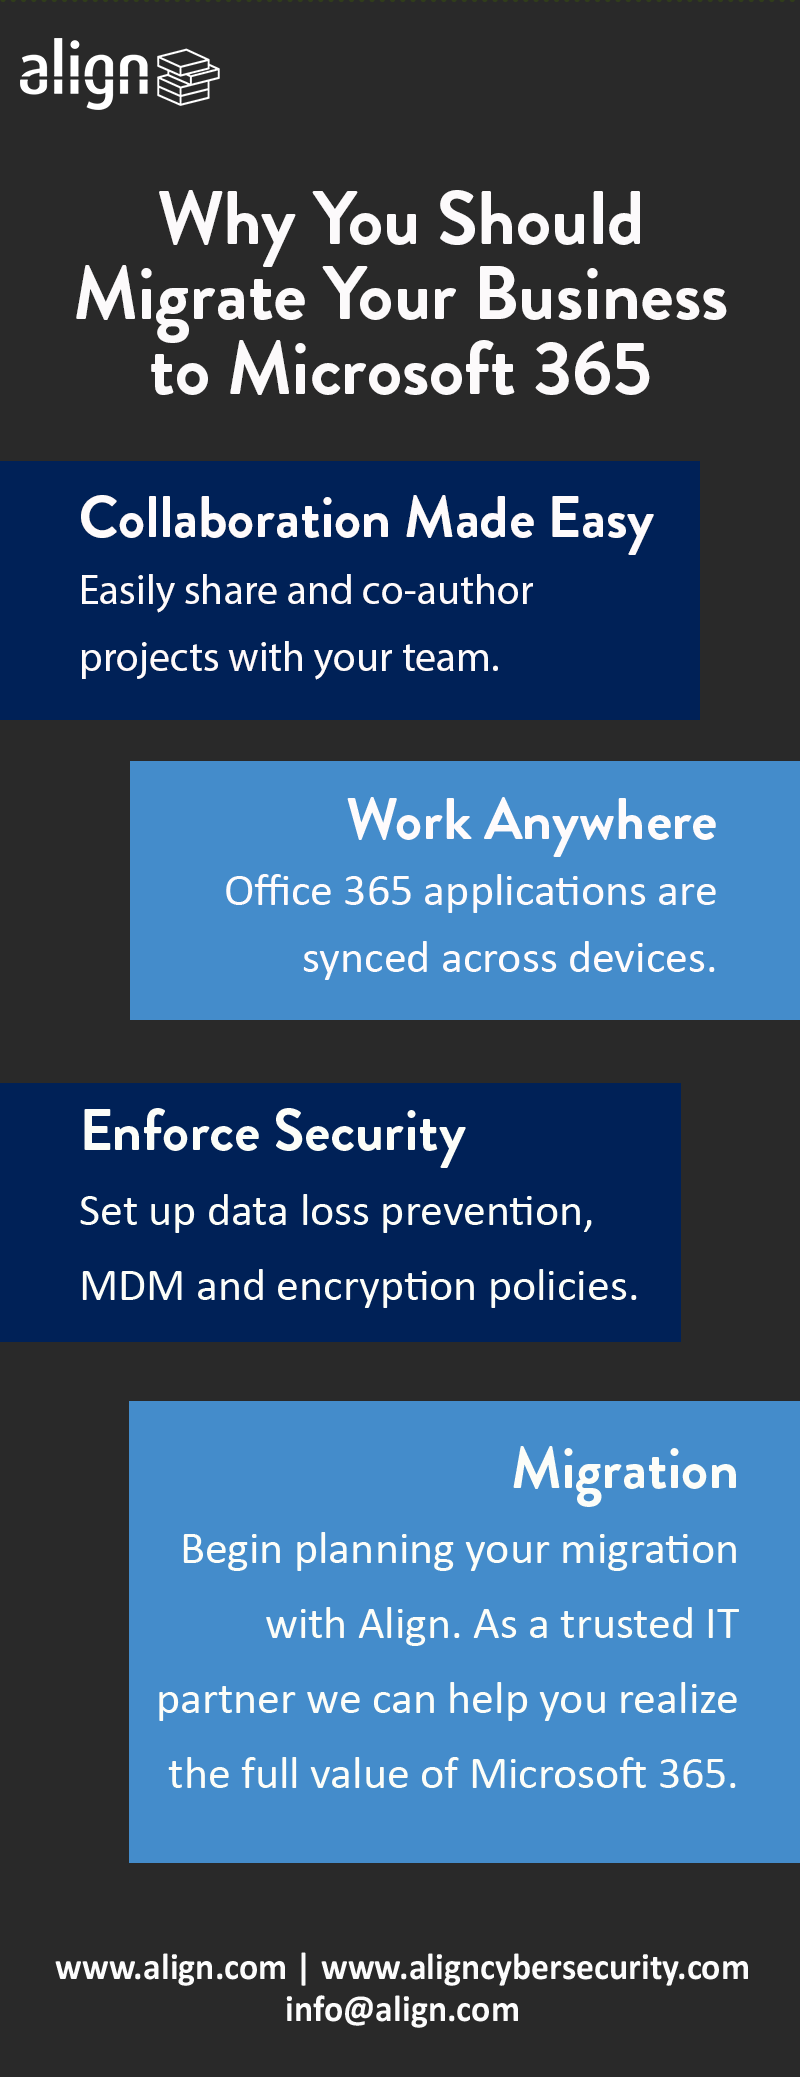 2018_05_01_Why_You_Should_Migrate_to_Microsoft_365-1